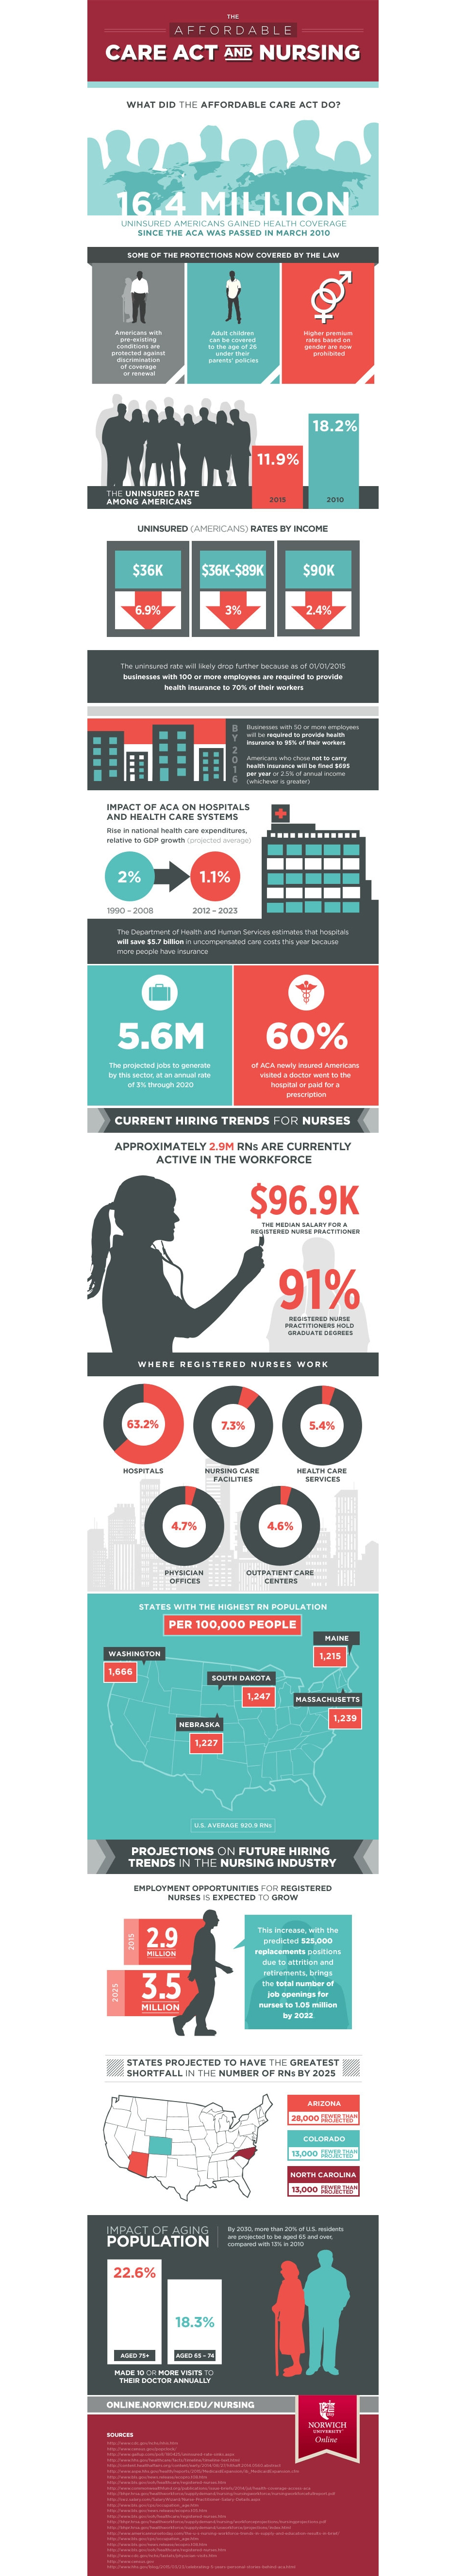 affordable care act infographic image